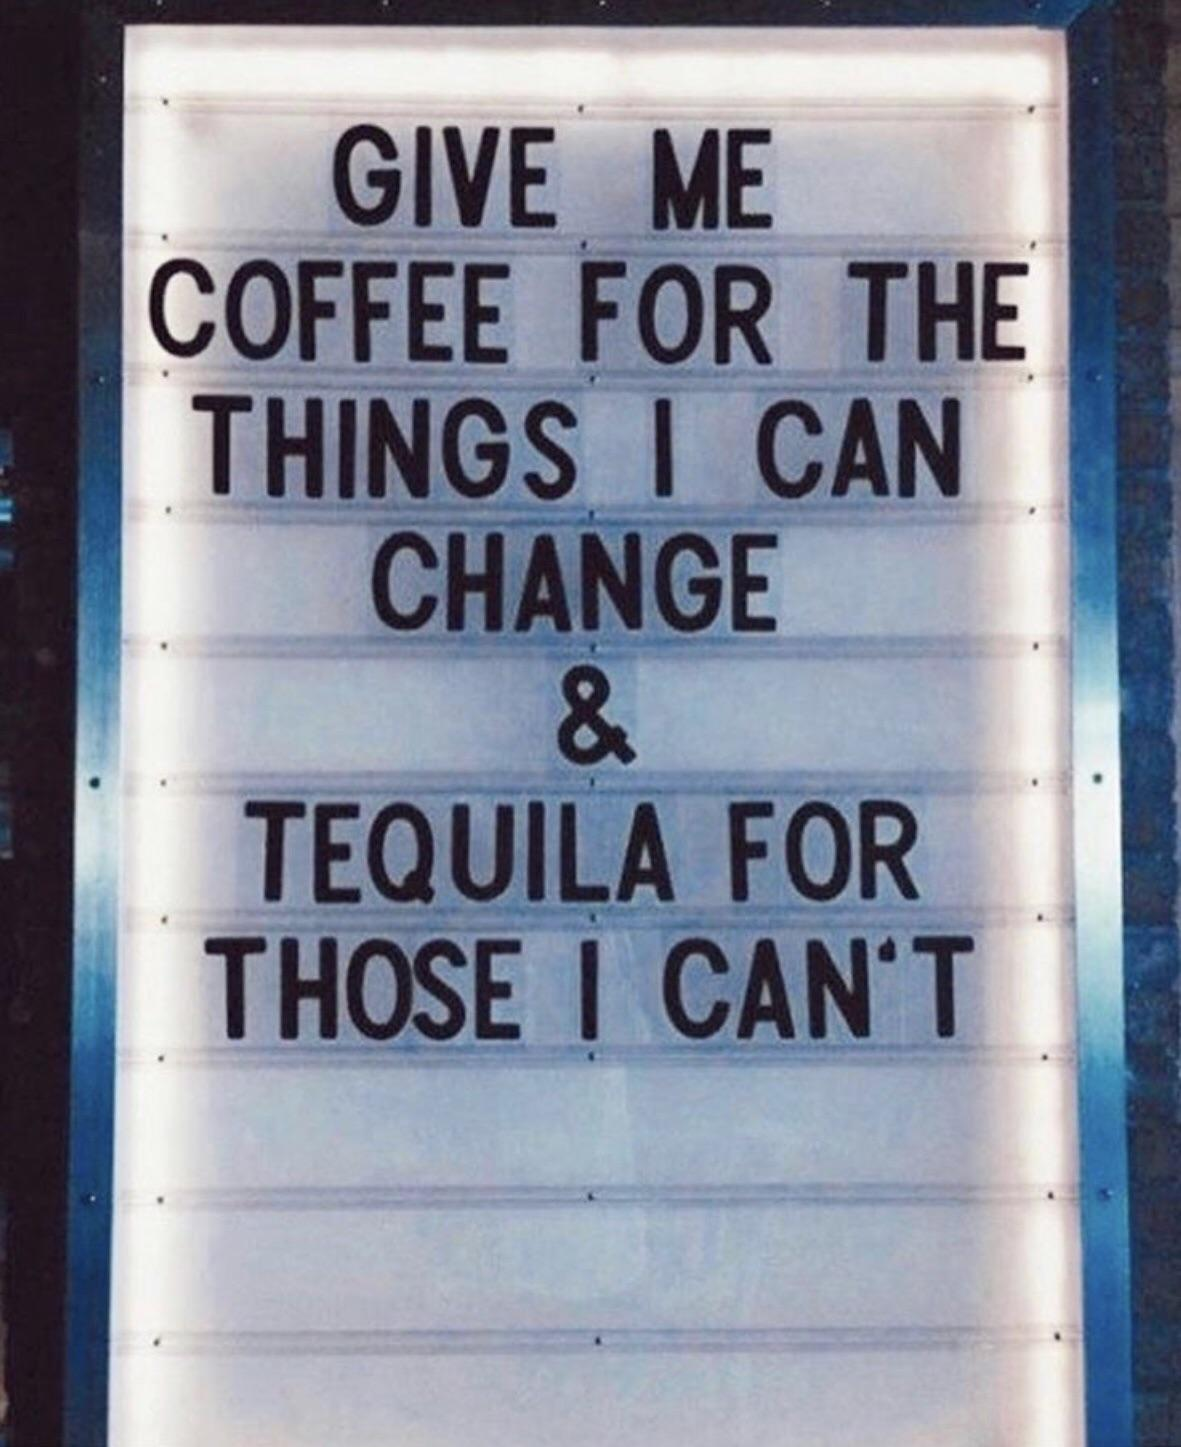 [Image] Give me coffee for the things I can change & tequila for those I can't!